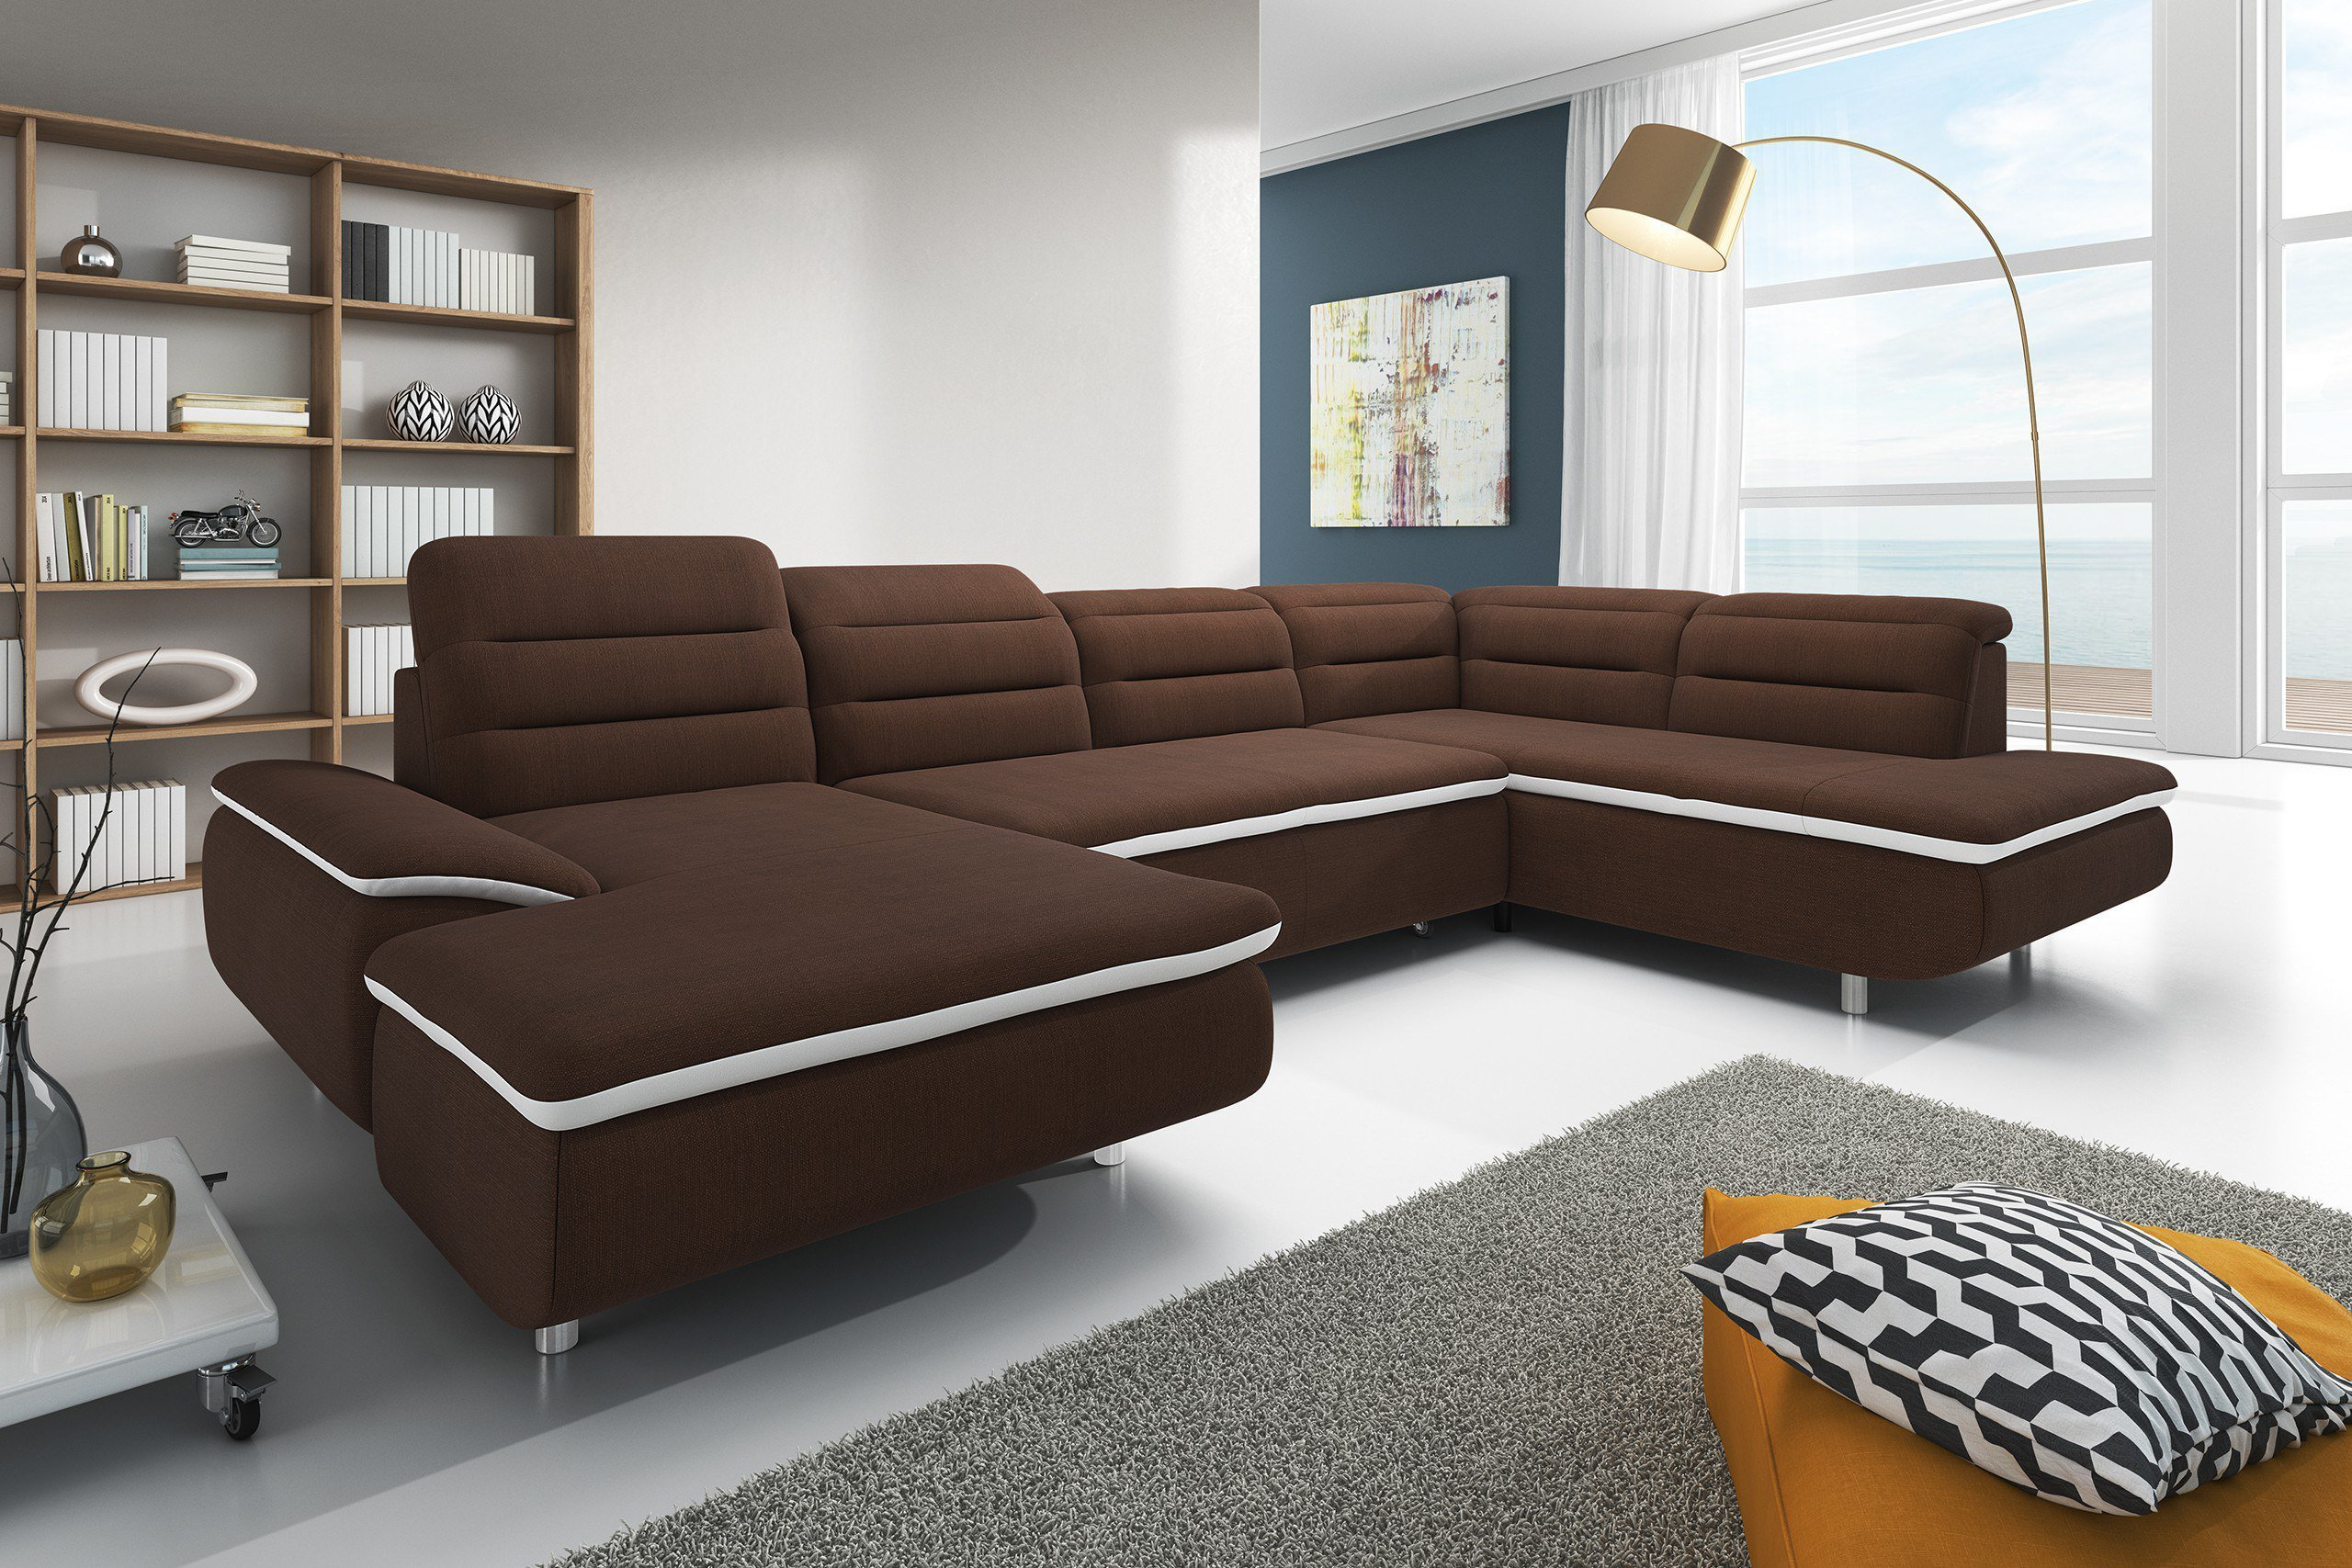 new look m bel slize u sofa in braun m bel letz ihr. Black Bedroom Furniture Sets. Home Design Ideas